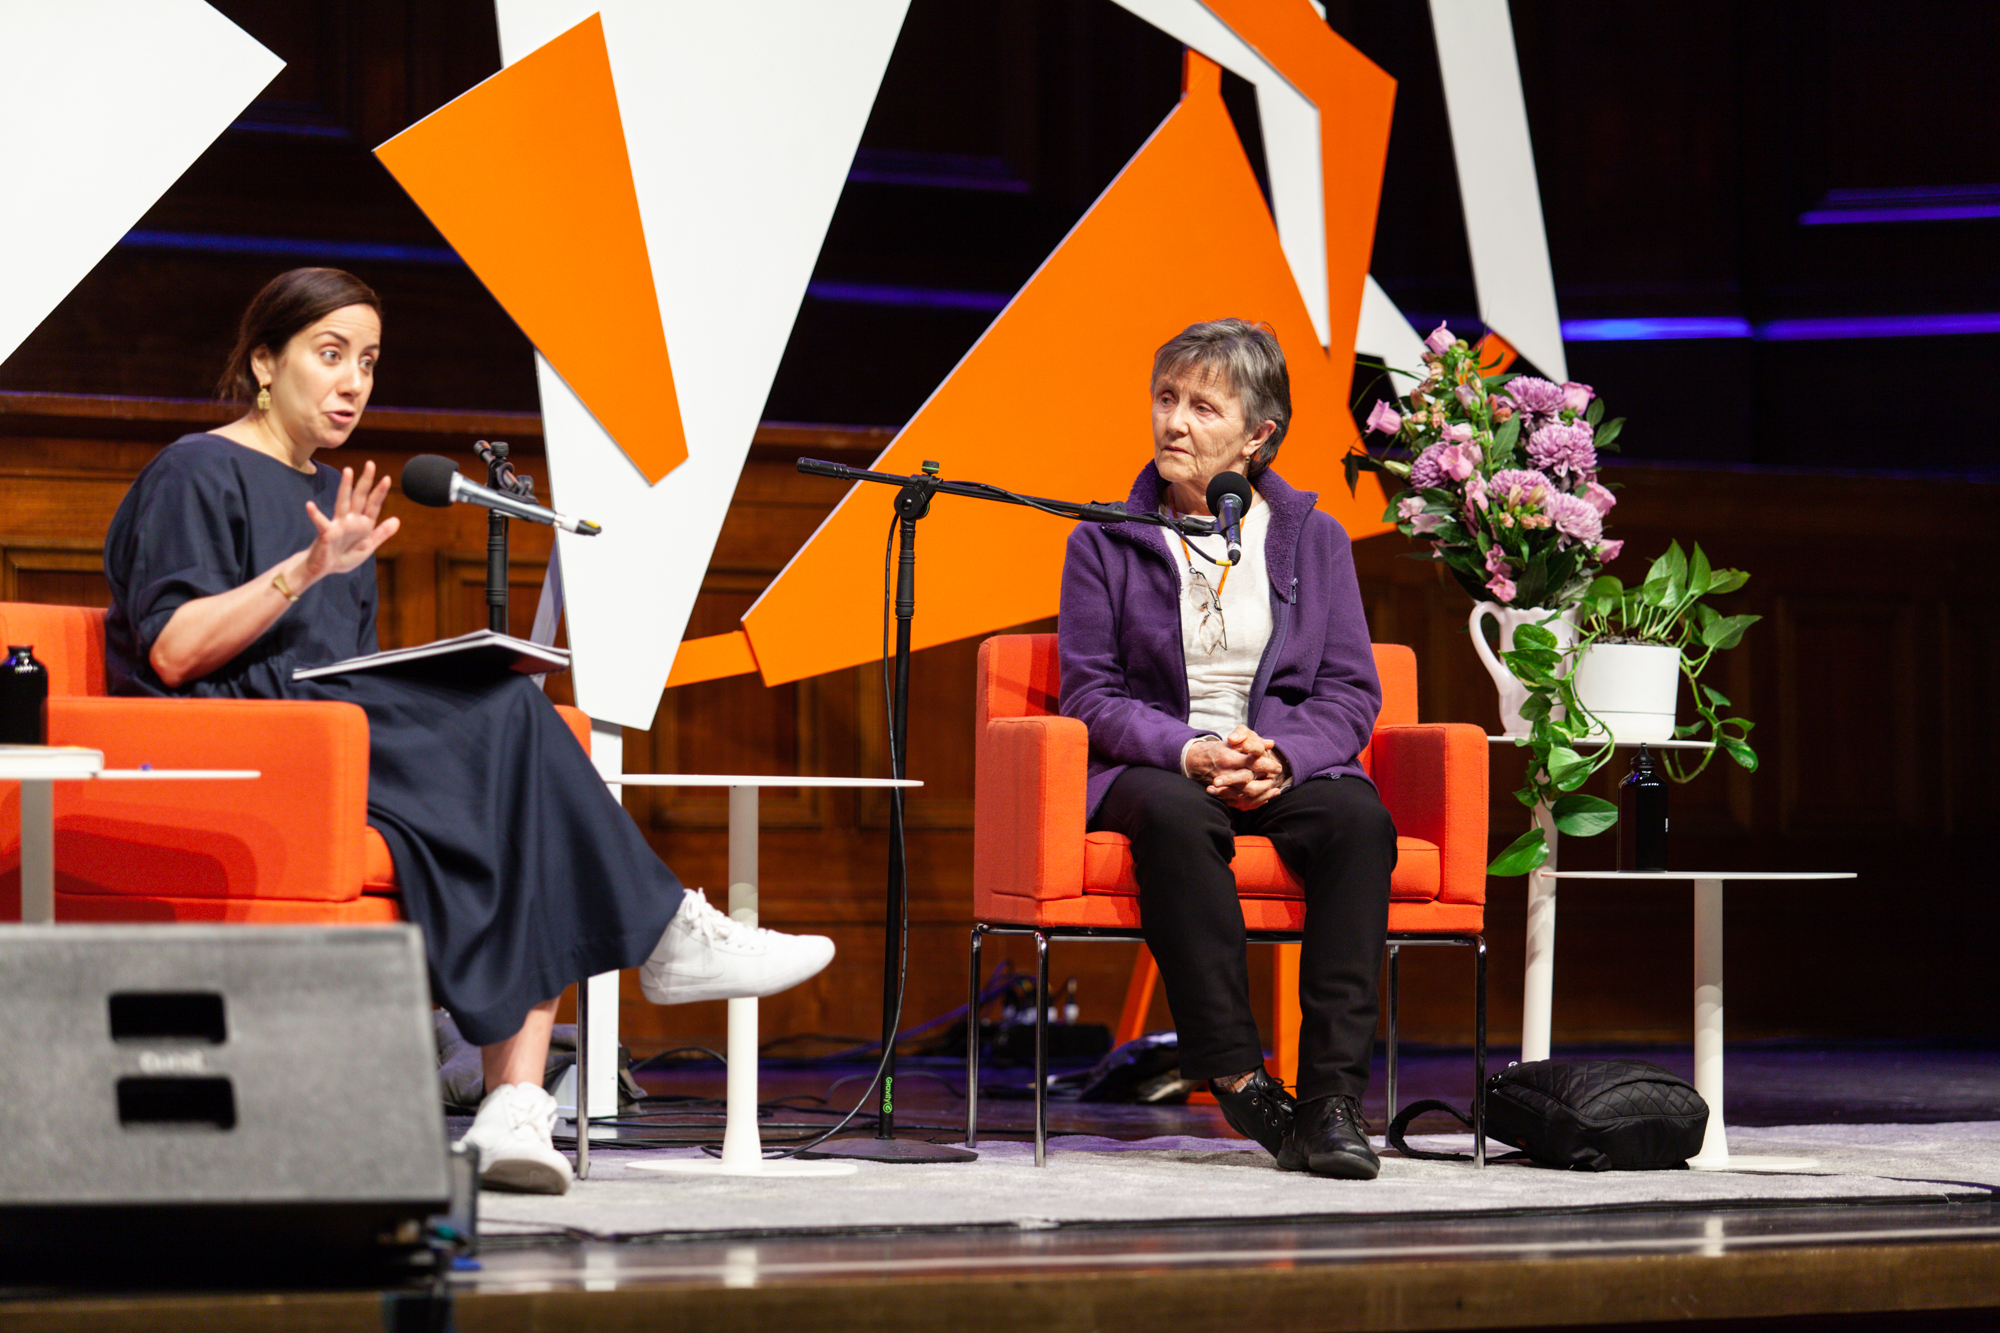 Photograph of Sarah Krasnostein and Helen Garner on stage